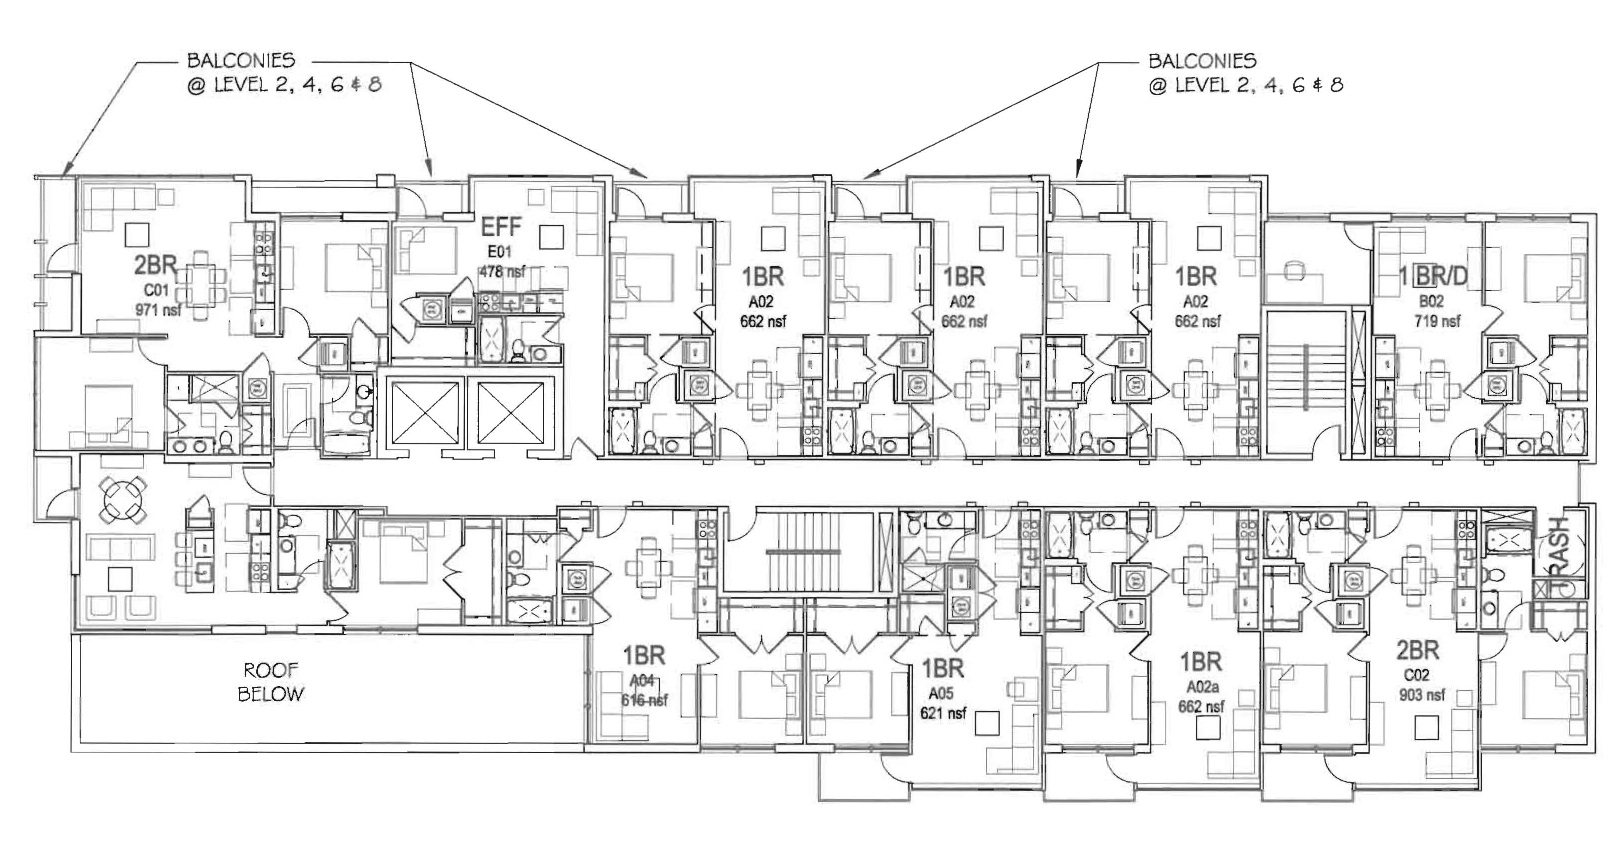 Revised plans for apartment building at 15th v for Apartment building blueprints